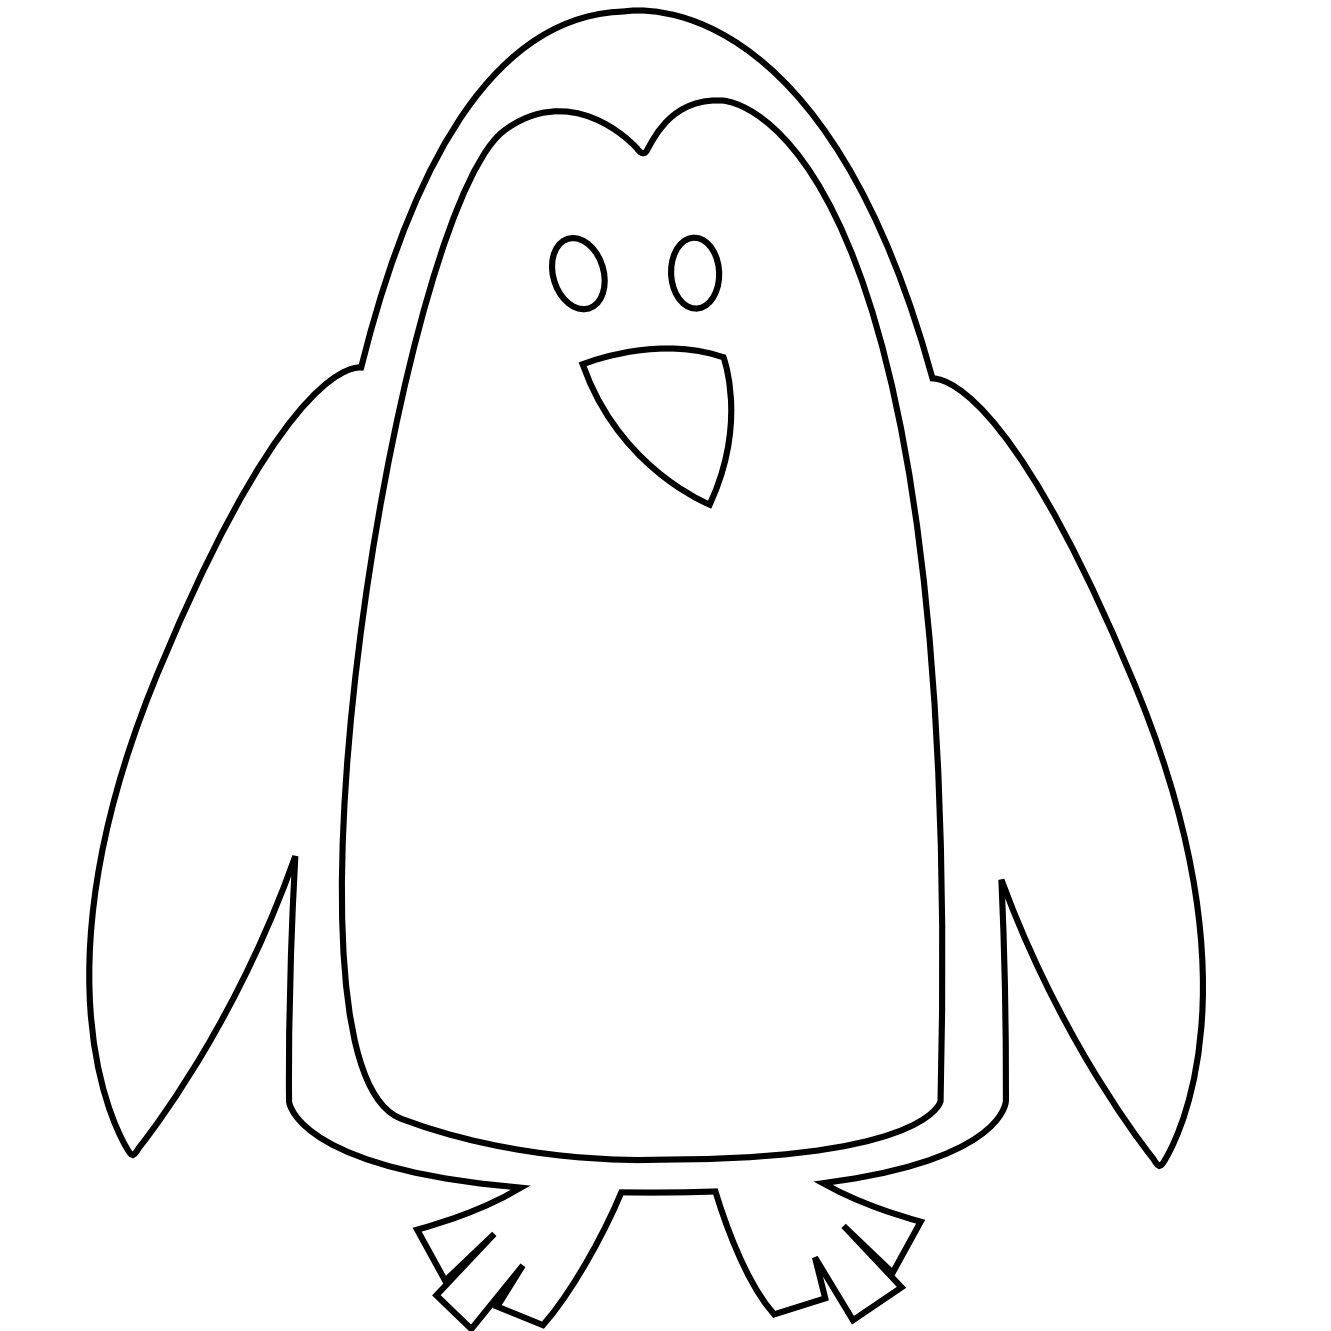 baby%20penguin%20clipart%20black%20and%20white